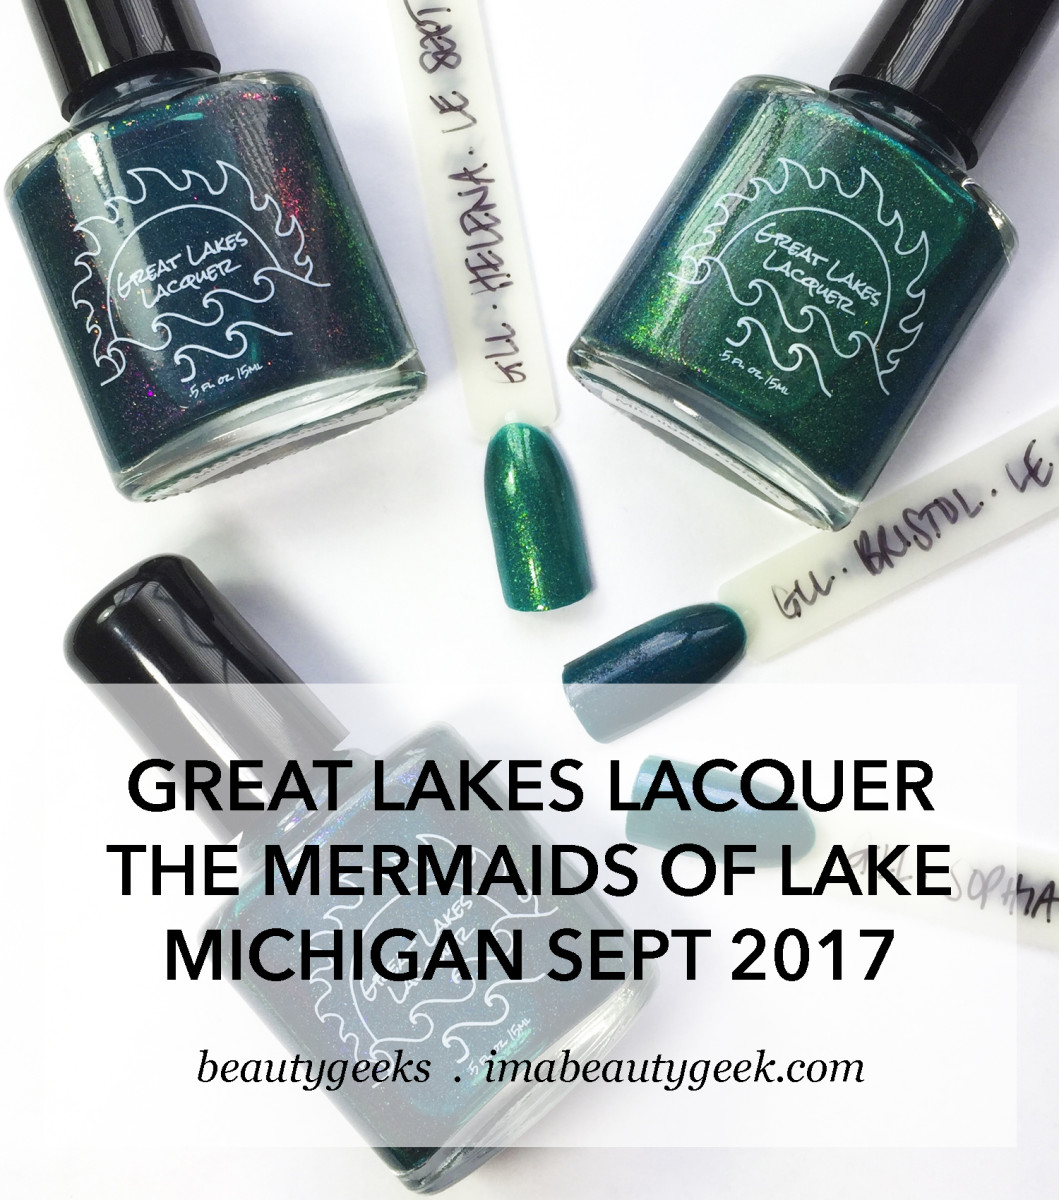 Great Lakes Lacquer Mermaids of Lake Michigan Sept 2017 swatches-BEAUTYGEEKS